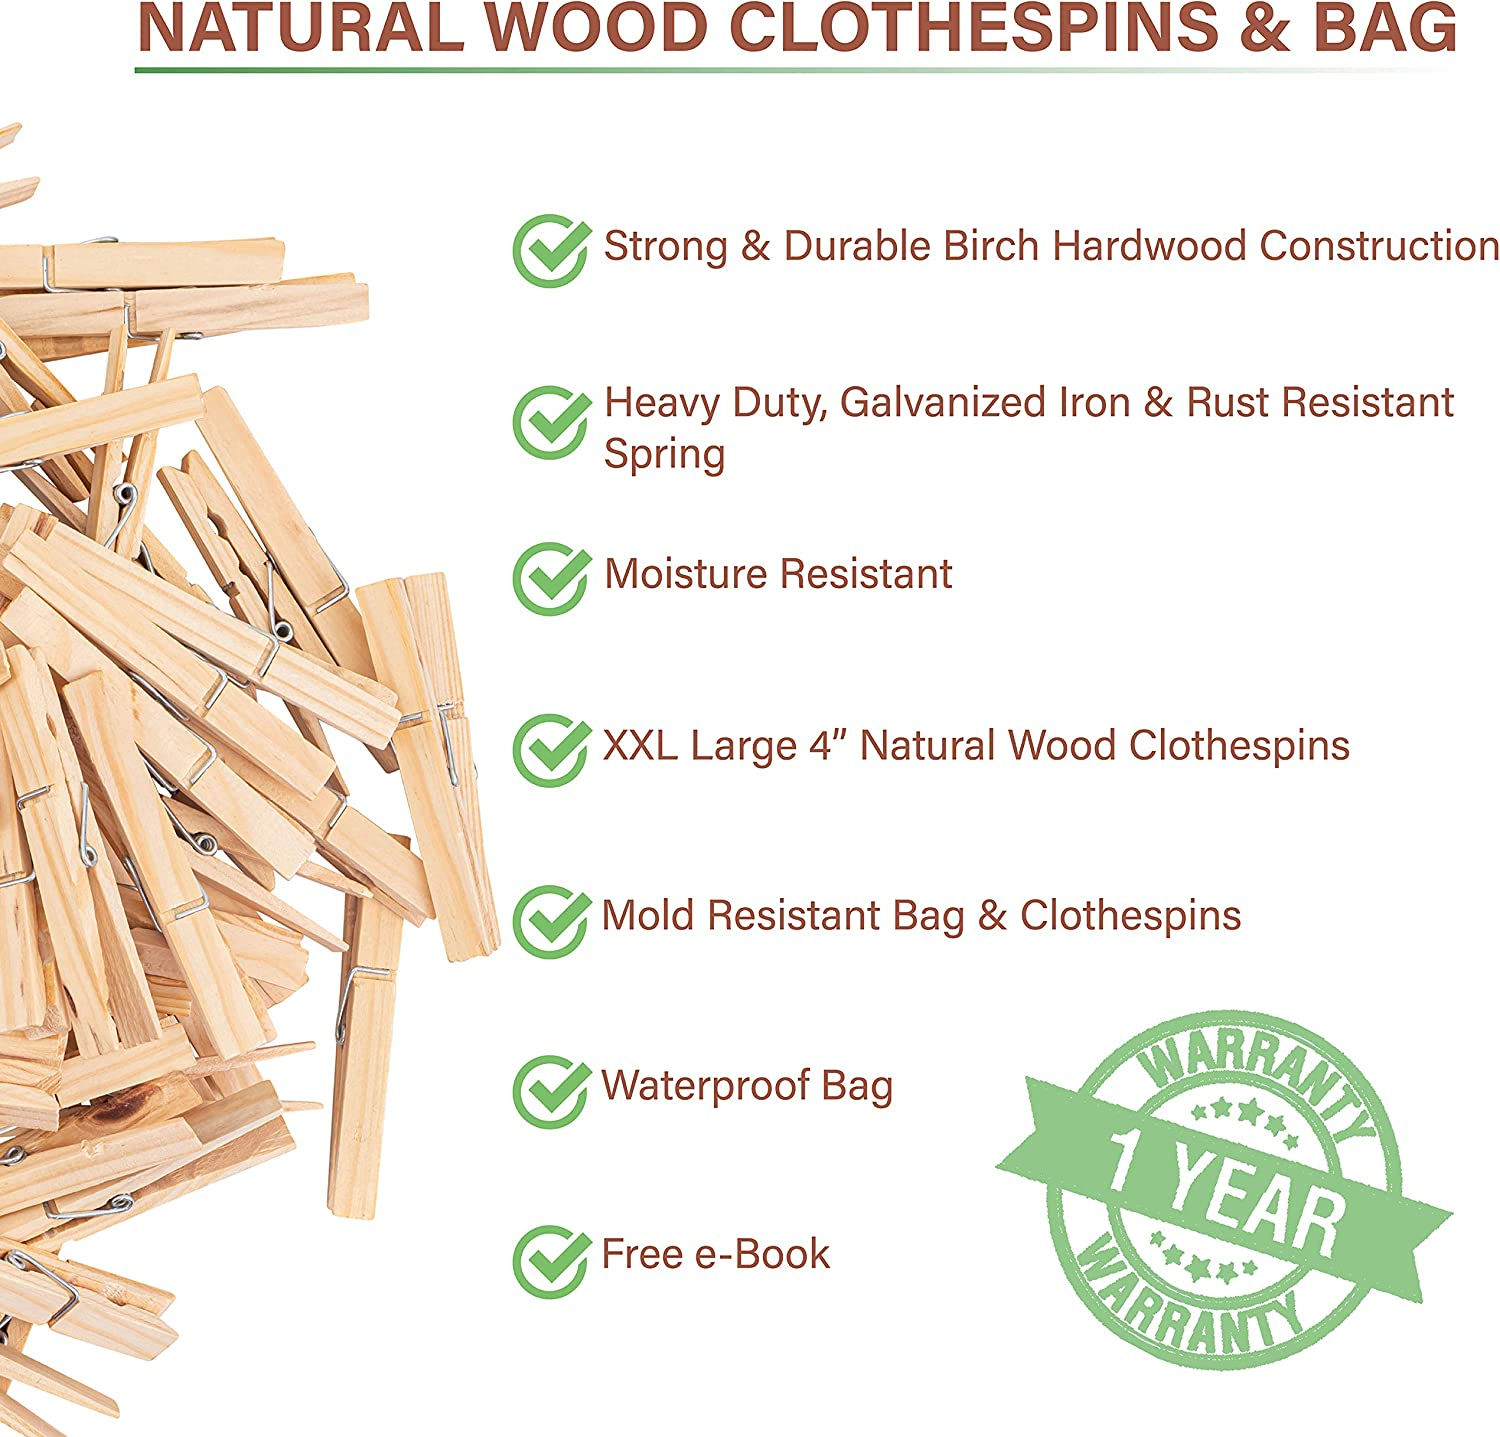 Jumbo Heavy Duty /& Natural Birch Wood Clothes Pegs with Large Waterproof and Dust-Proof Clothes Pin Bag for Indoor or Outdoor Clothesline Balffor 100 Large Wooden Clothespins /& Clothespin Bag